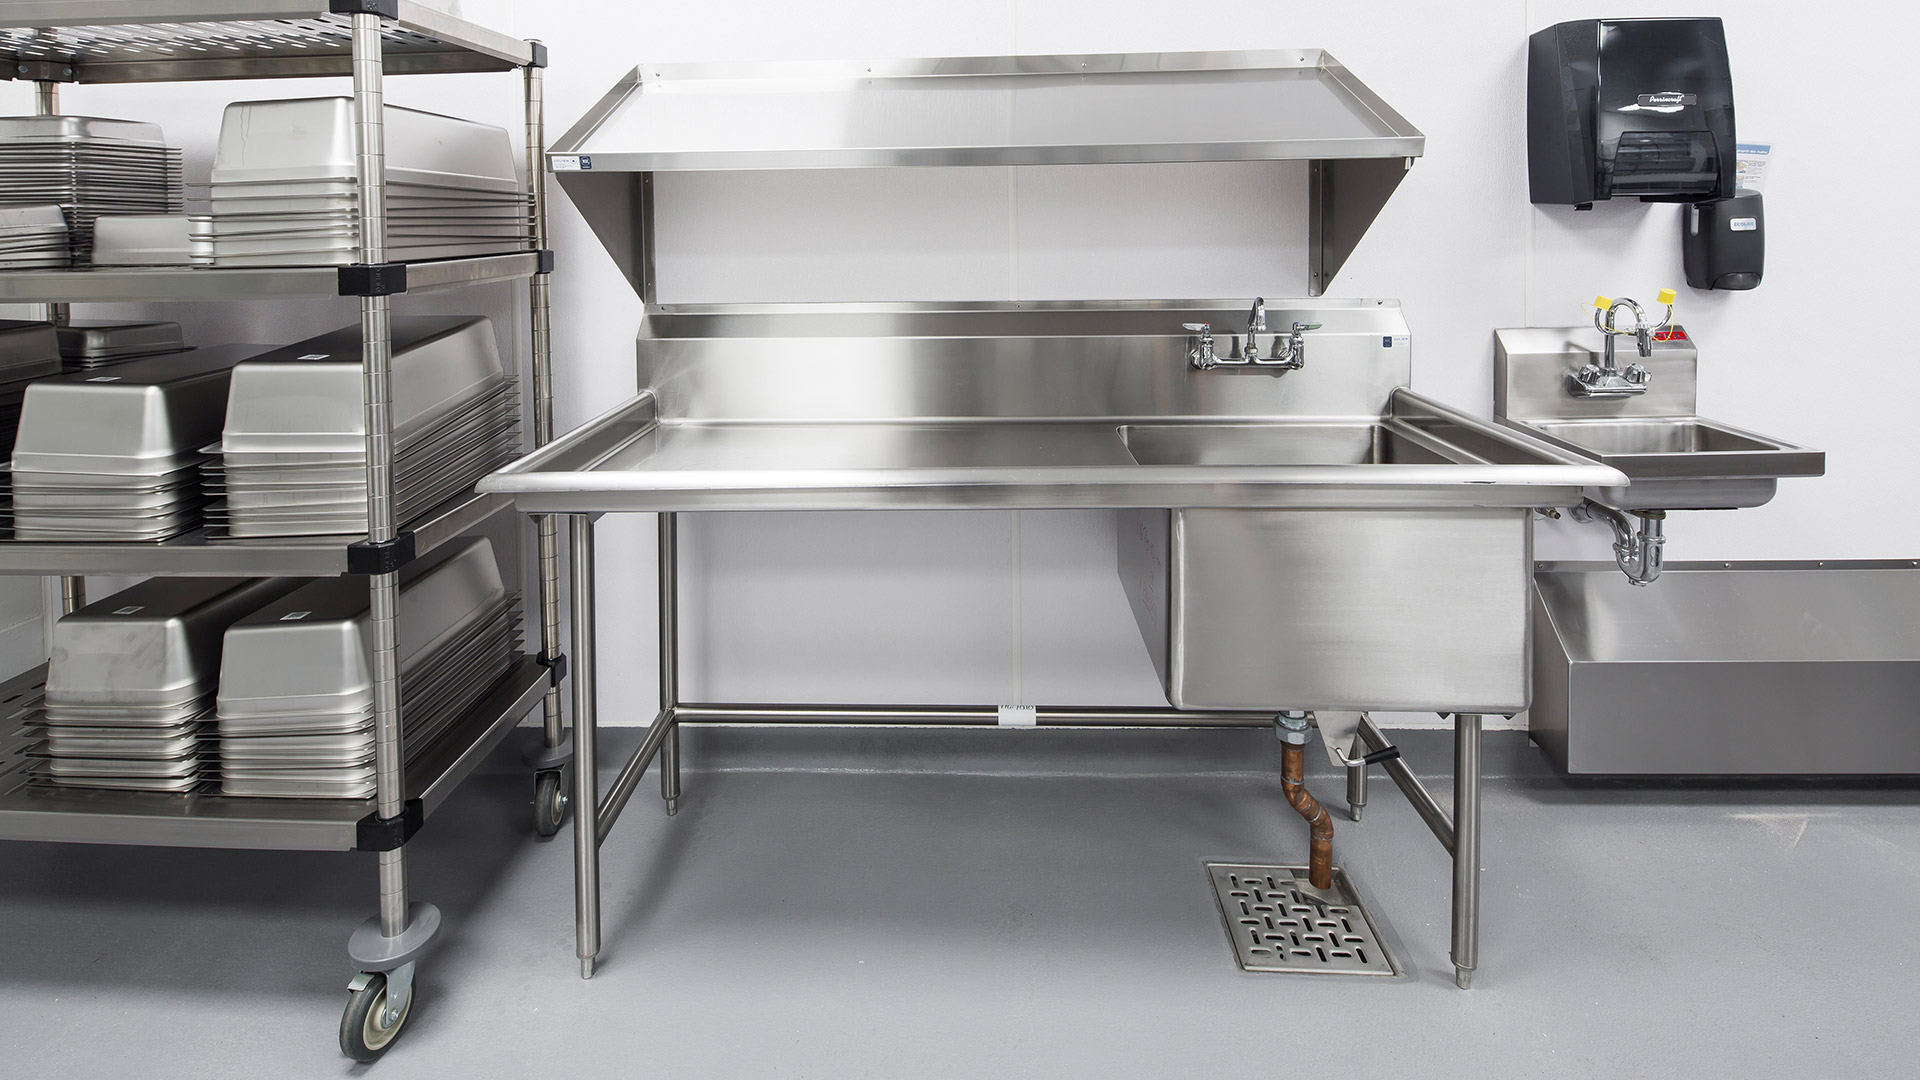 Commercial Kitchens Fabrication And Food Equipment Supply